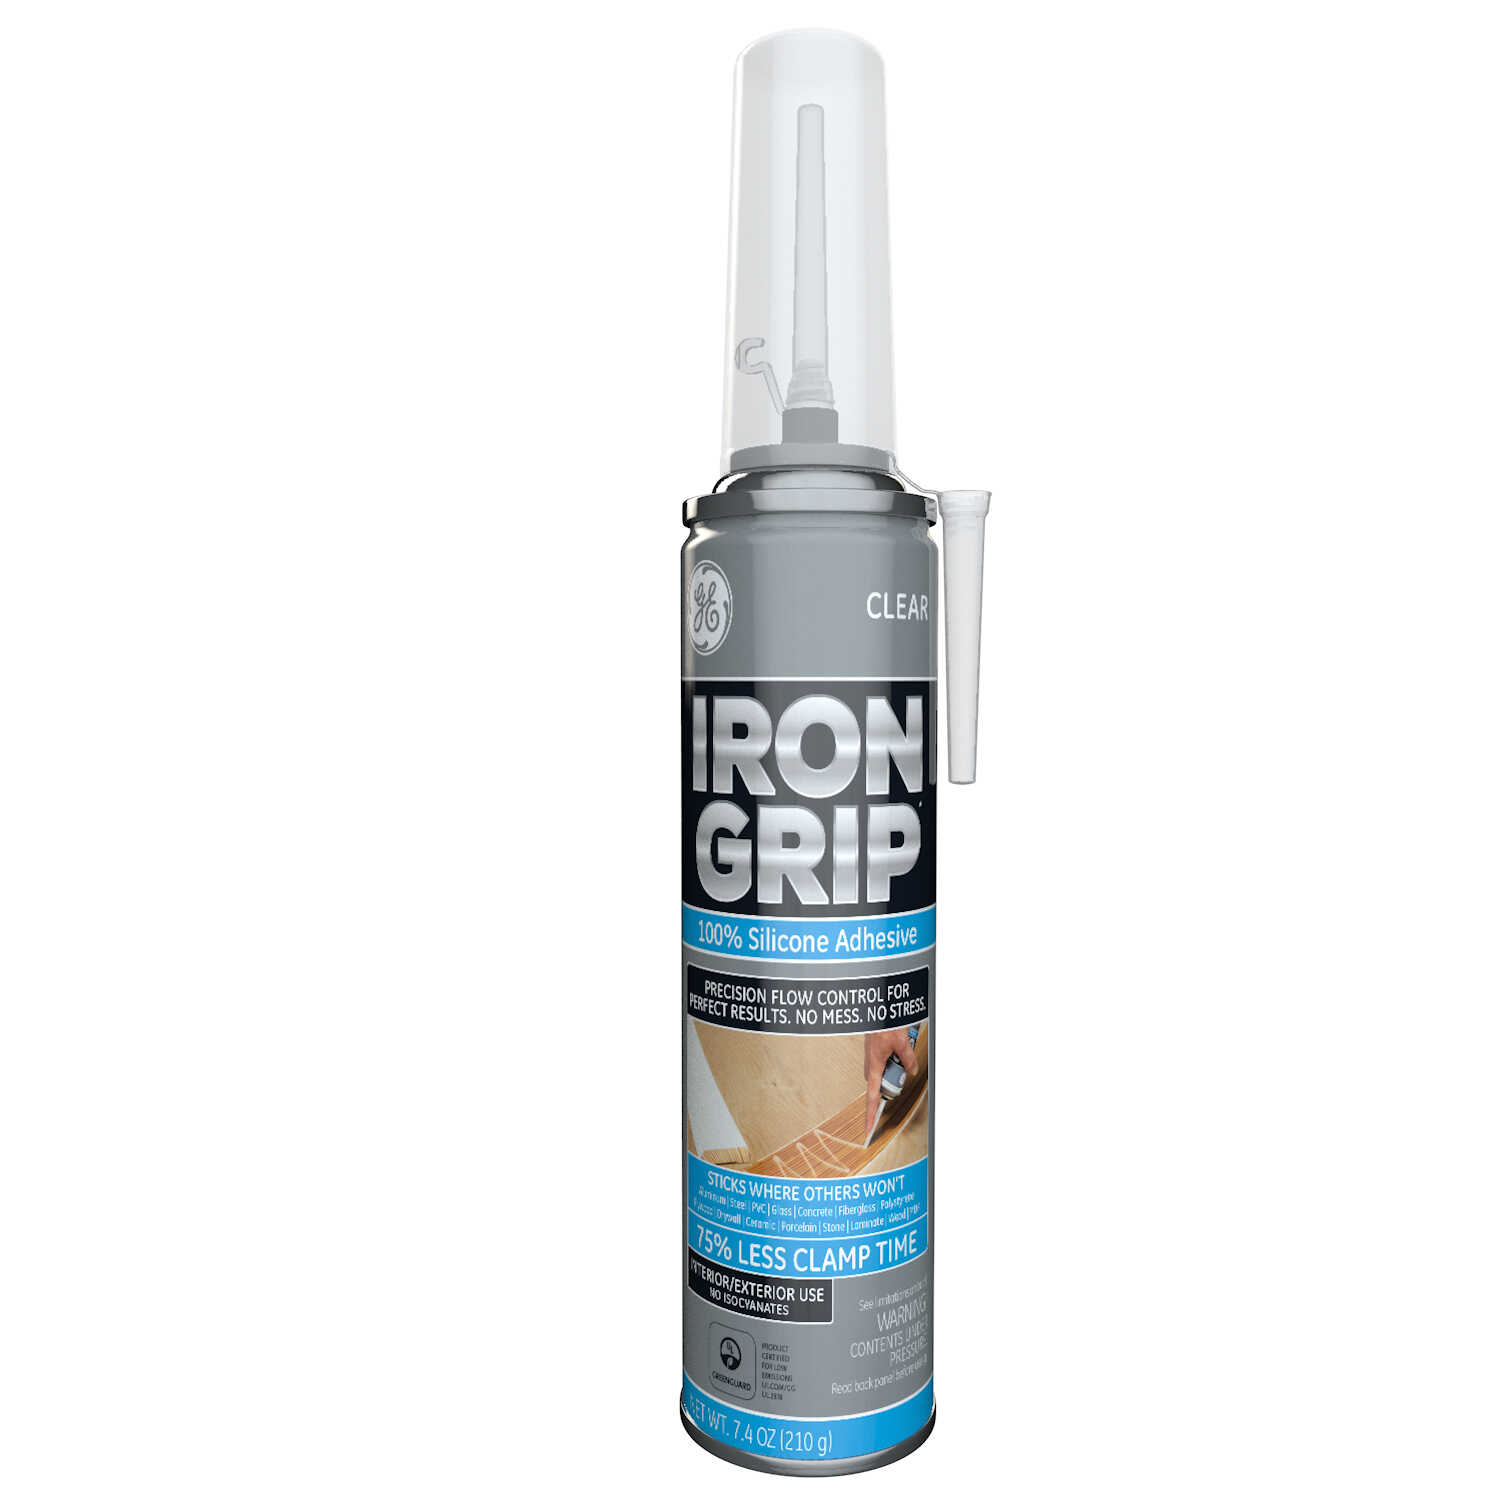 GE Iron Grip Industrial Strength Silicone Adhesive 7 4 ounce oz